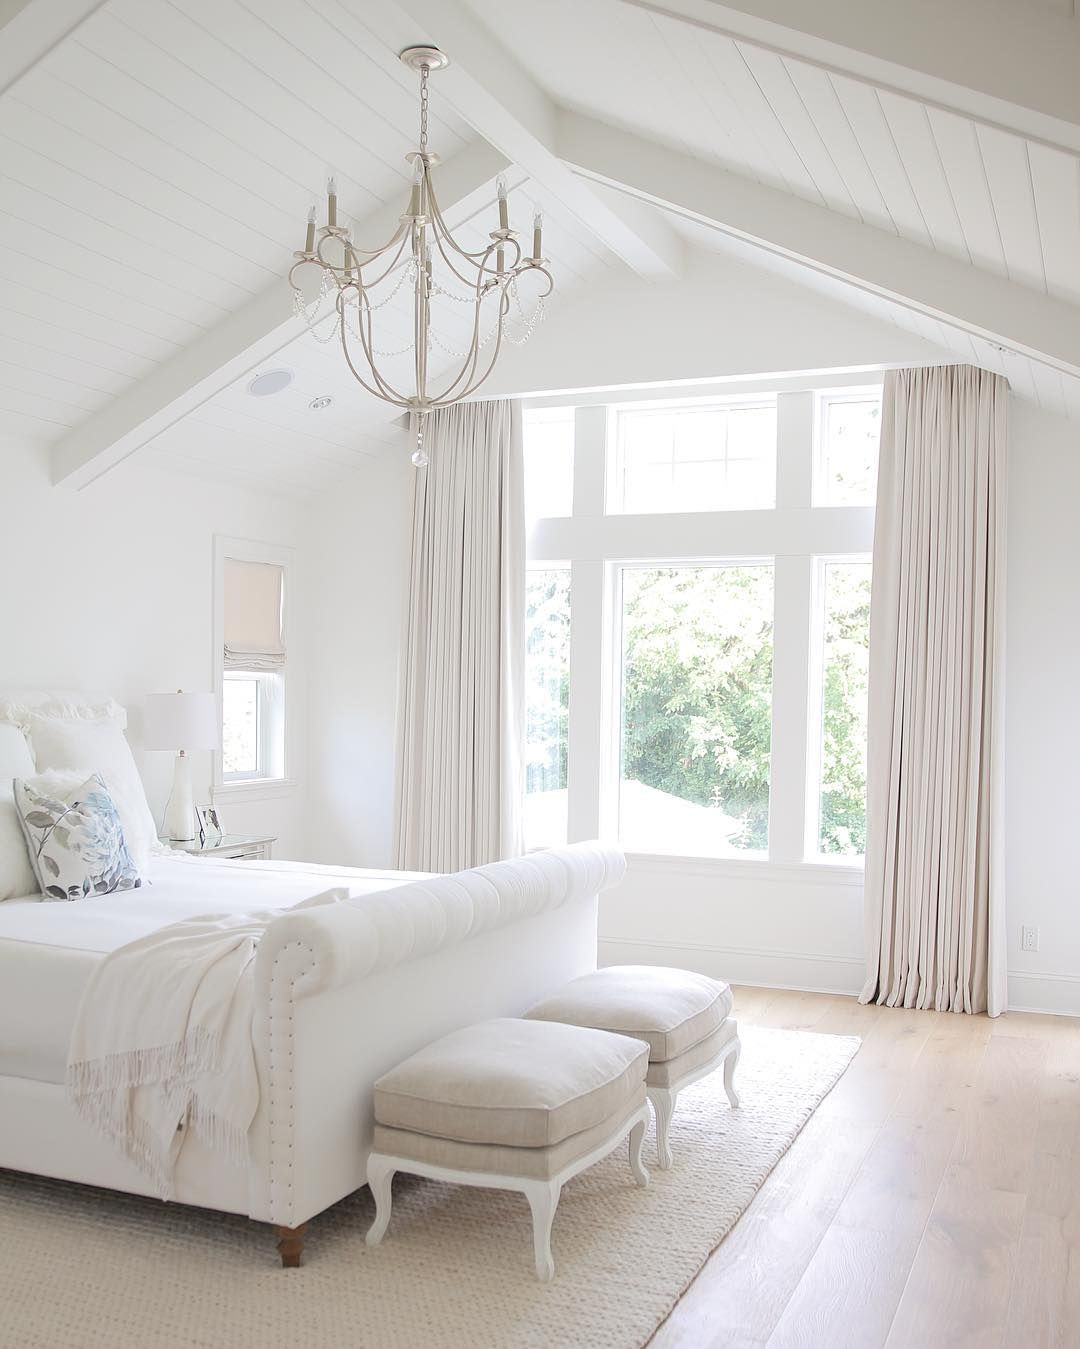 Simply white and neutral decor. Sharing my home and